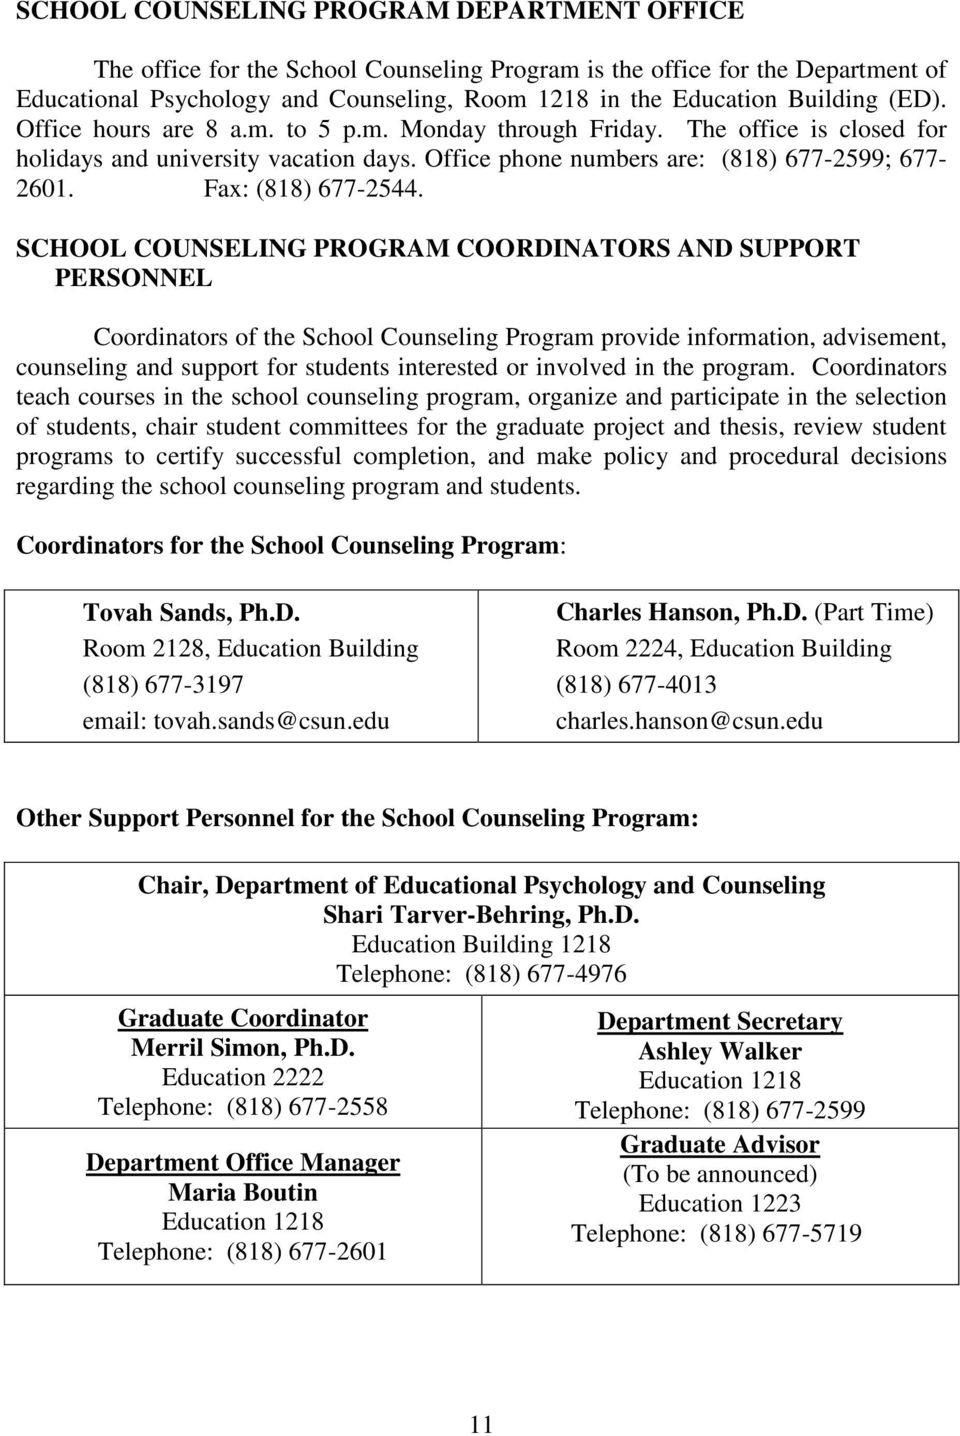 SCHOOL COUNSELING PROGRAM COORDINATORS AND SUPPORT PERSONNEL Coordinators of the School Counseling Program provide information, advisement, counseling and support for students interested or involved